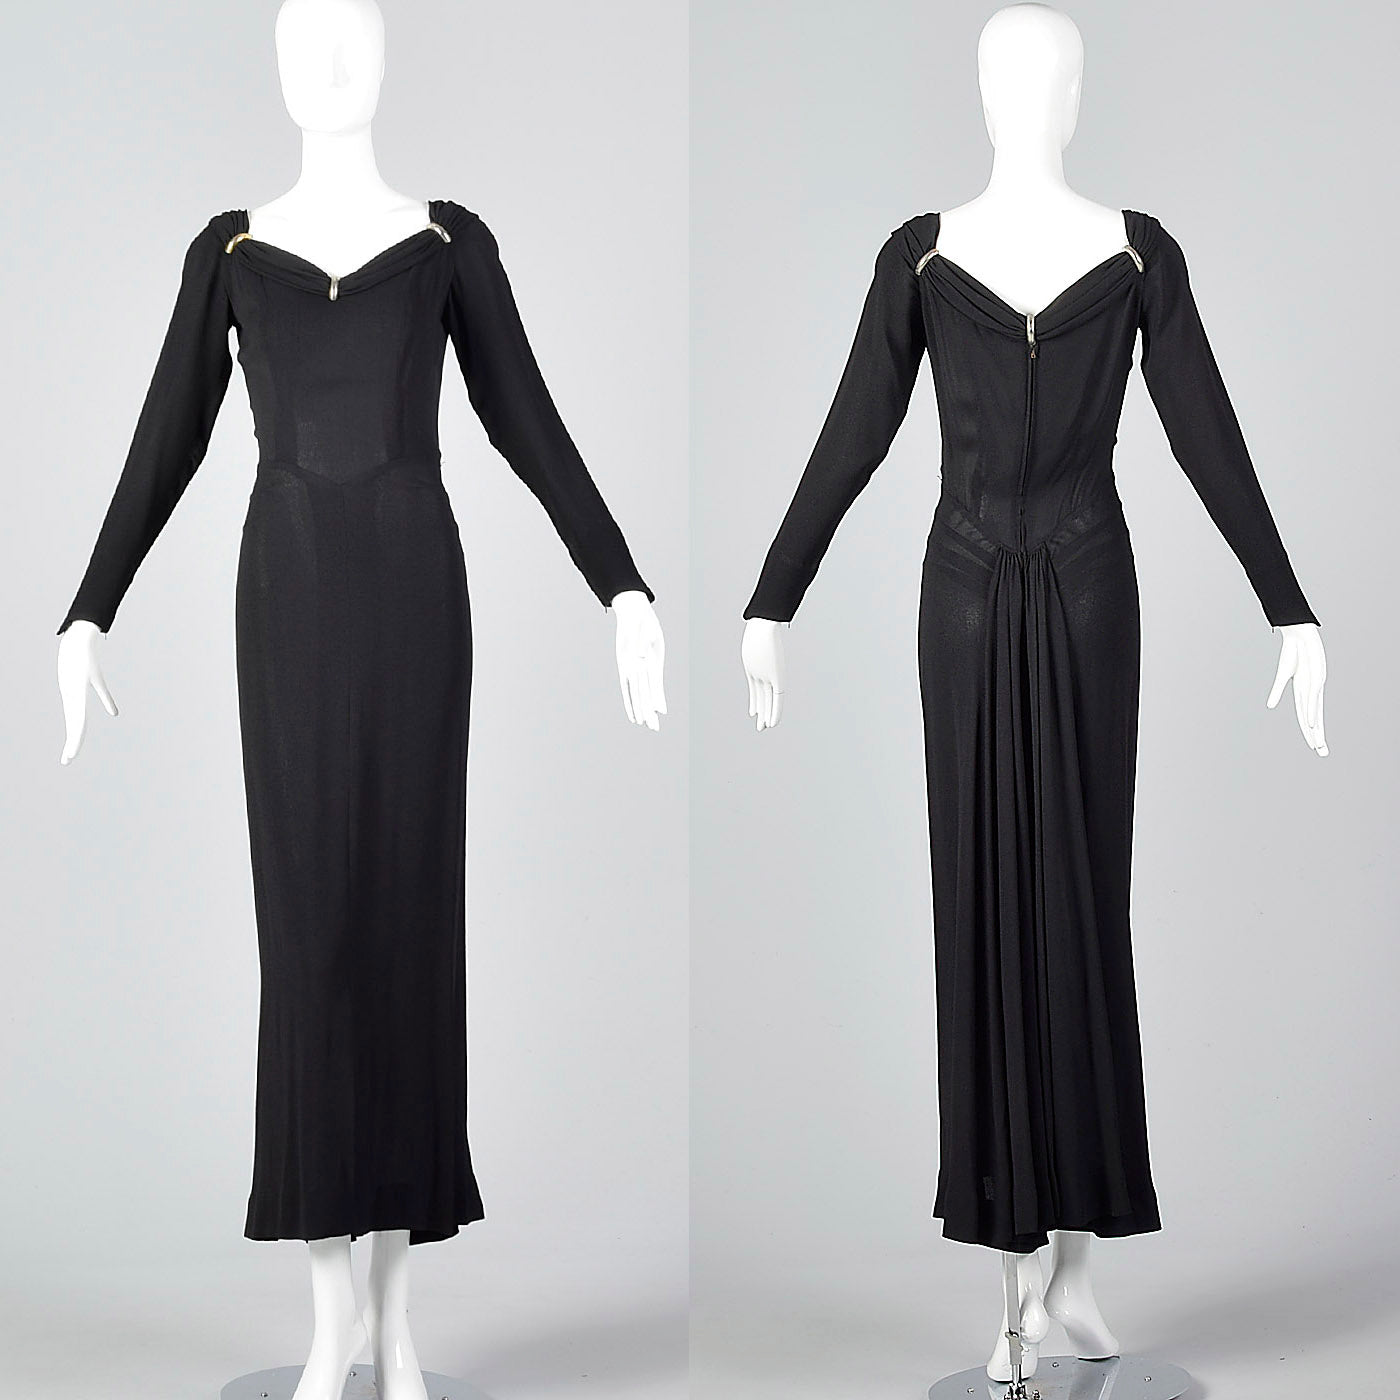 1940s Black Crepe Evening Dress with Train, Very Morticia